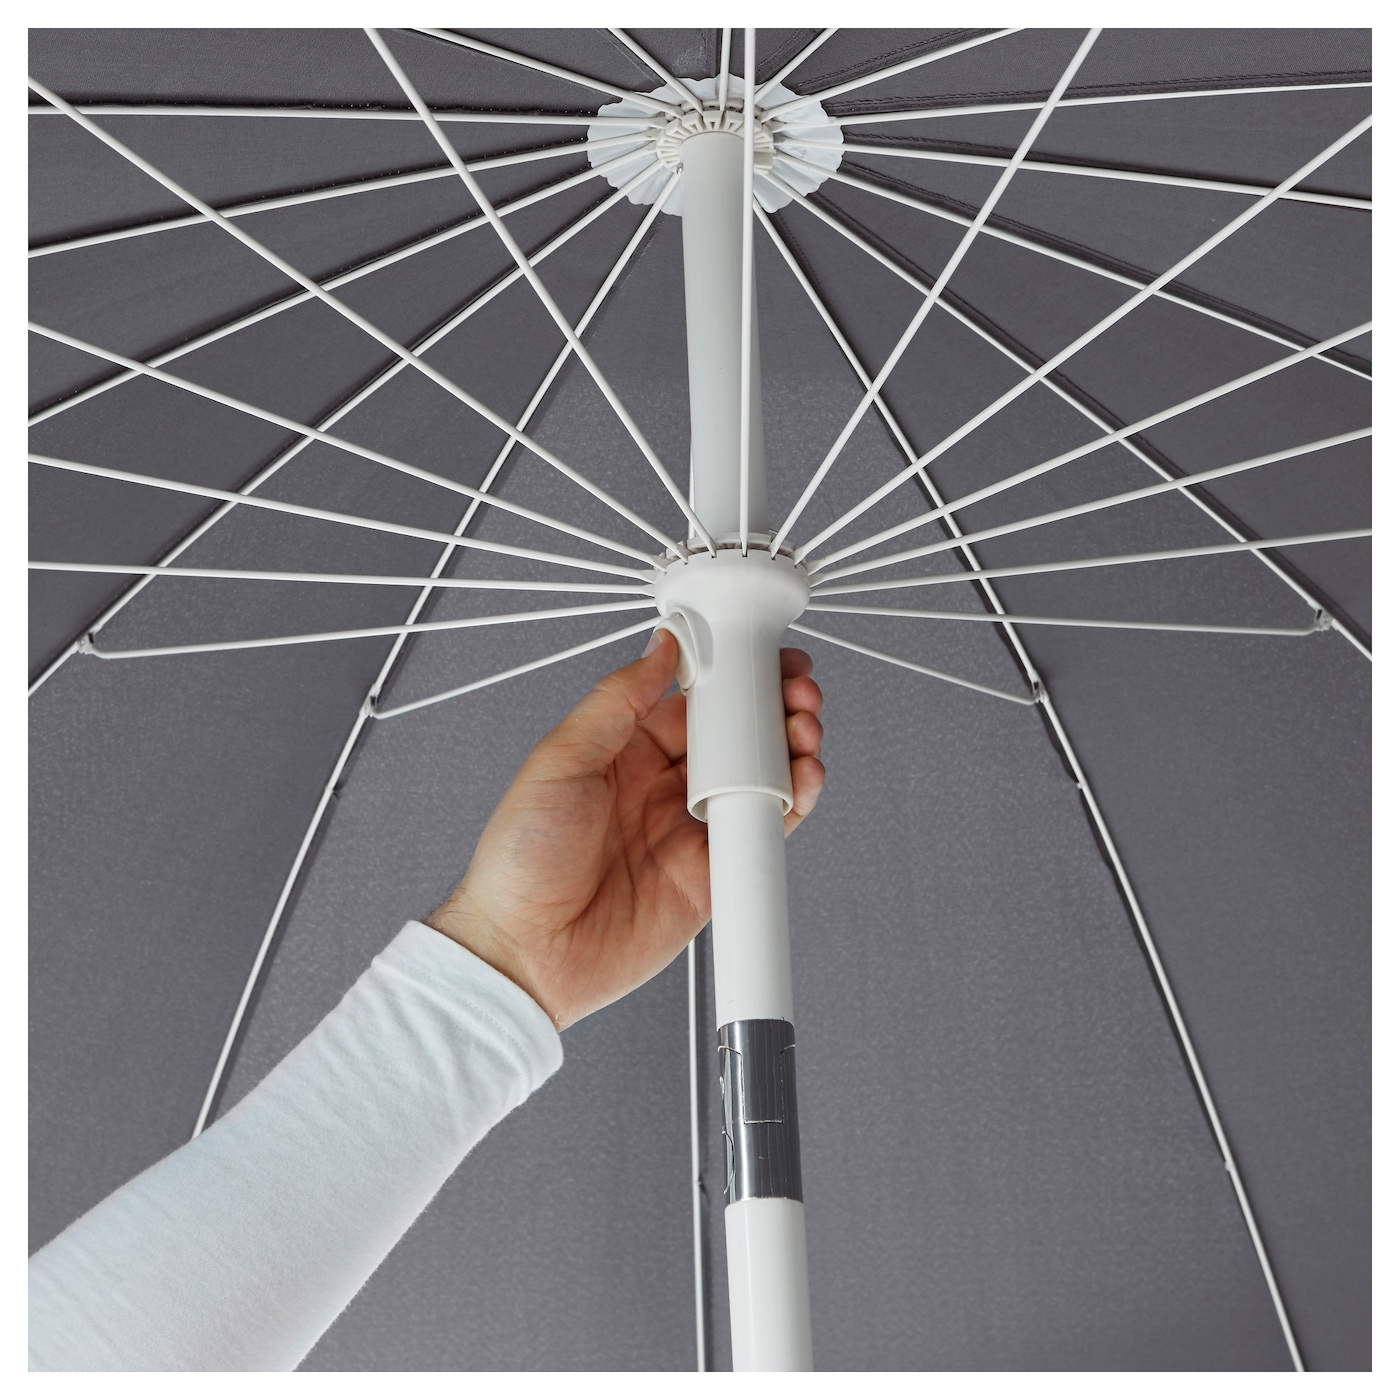 IKEA SAMSÖ parasol with base You can adjust the height of the parasol to perfectly suit your space.